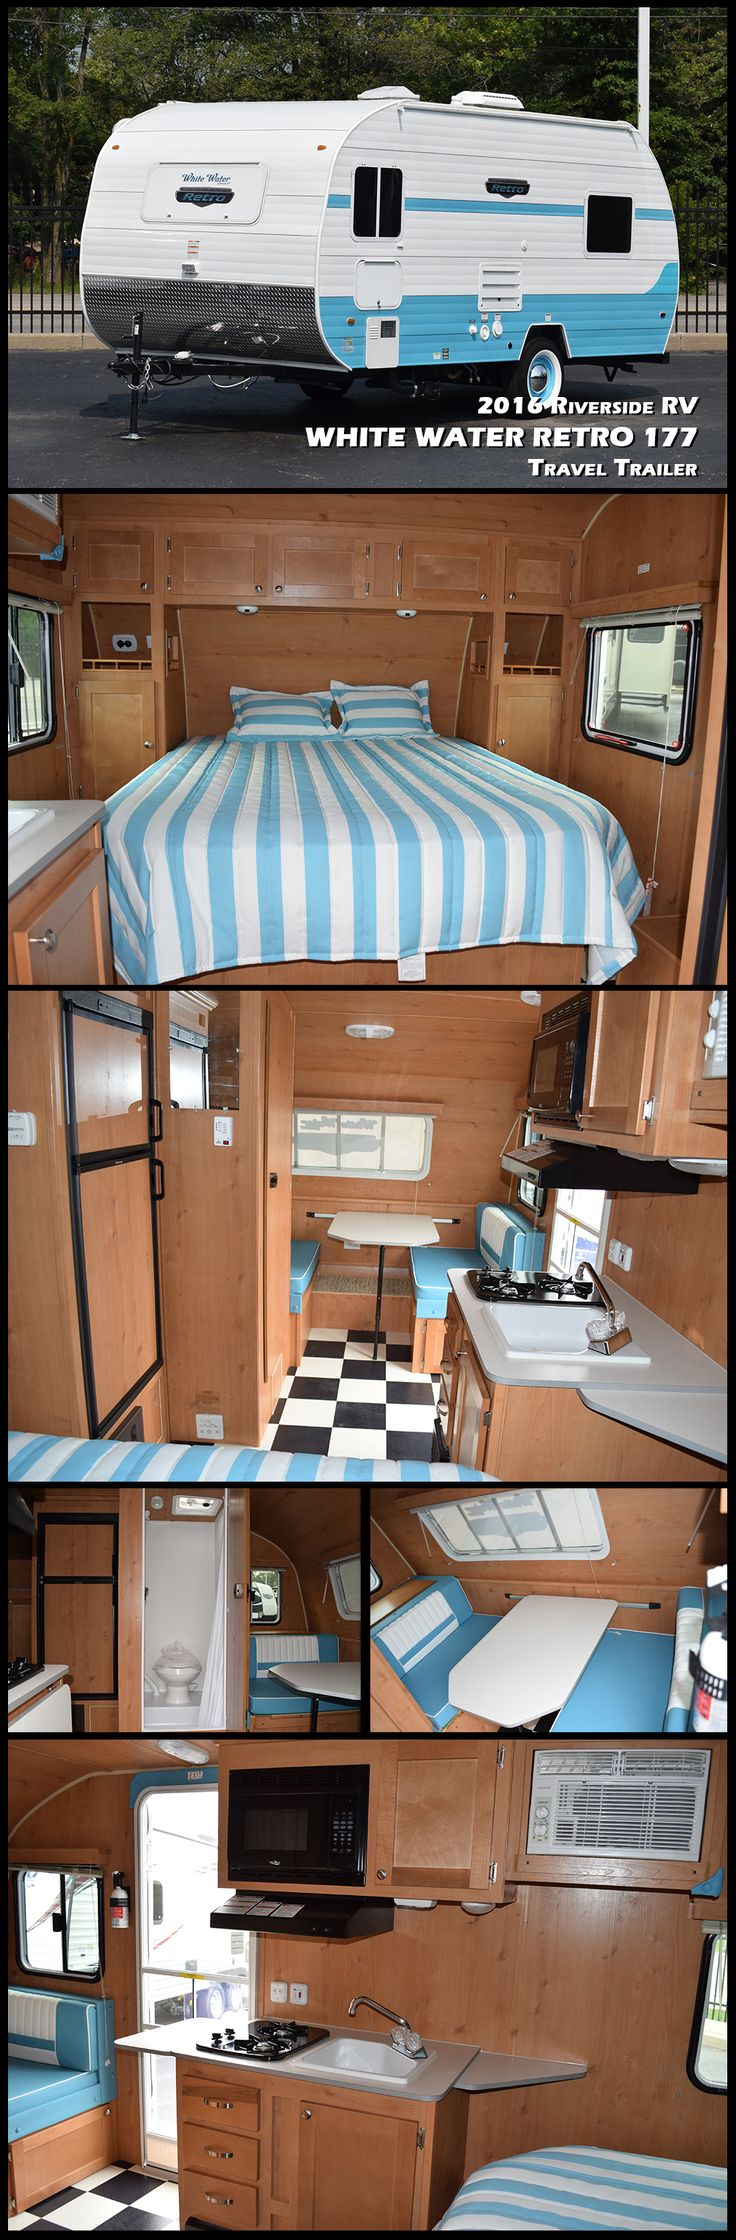 This 2016 riverside rv white water retro 177 ultra lite travel trailer has everything you